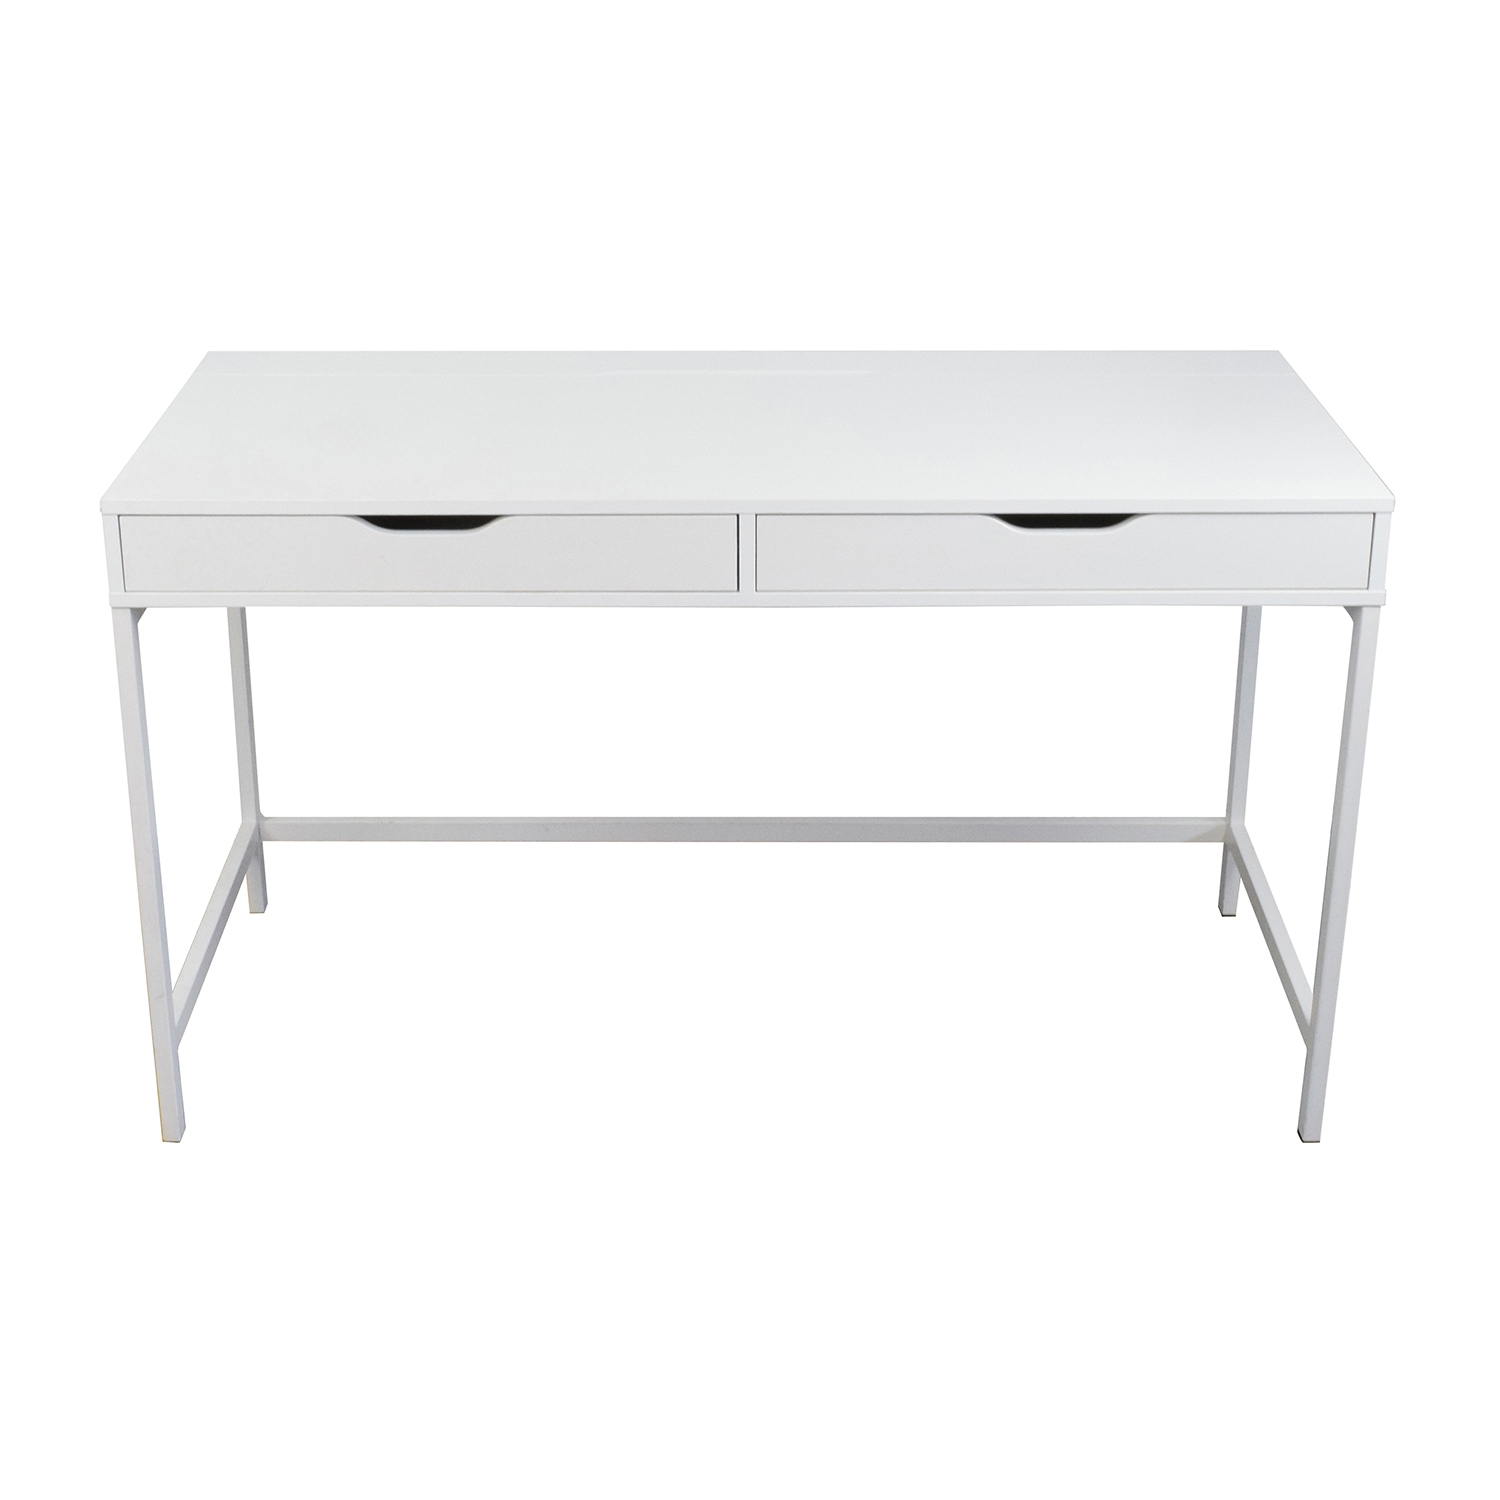 table bureau ikea lisabo desk ikea hilver table ikea. Black Bedroom Furniture Sets. Home Design Ideas